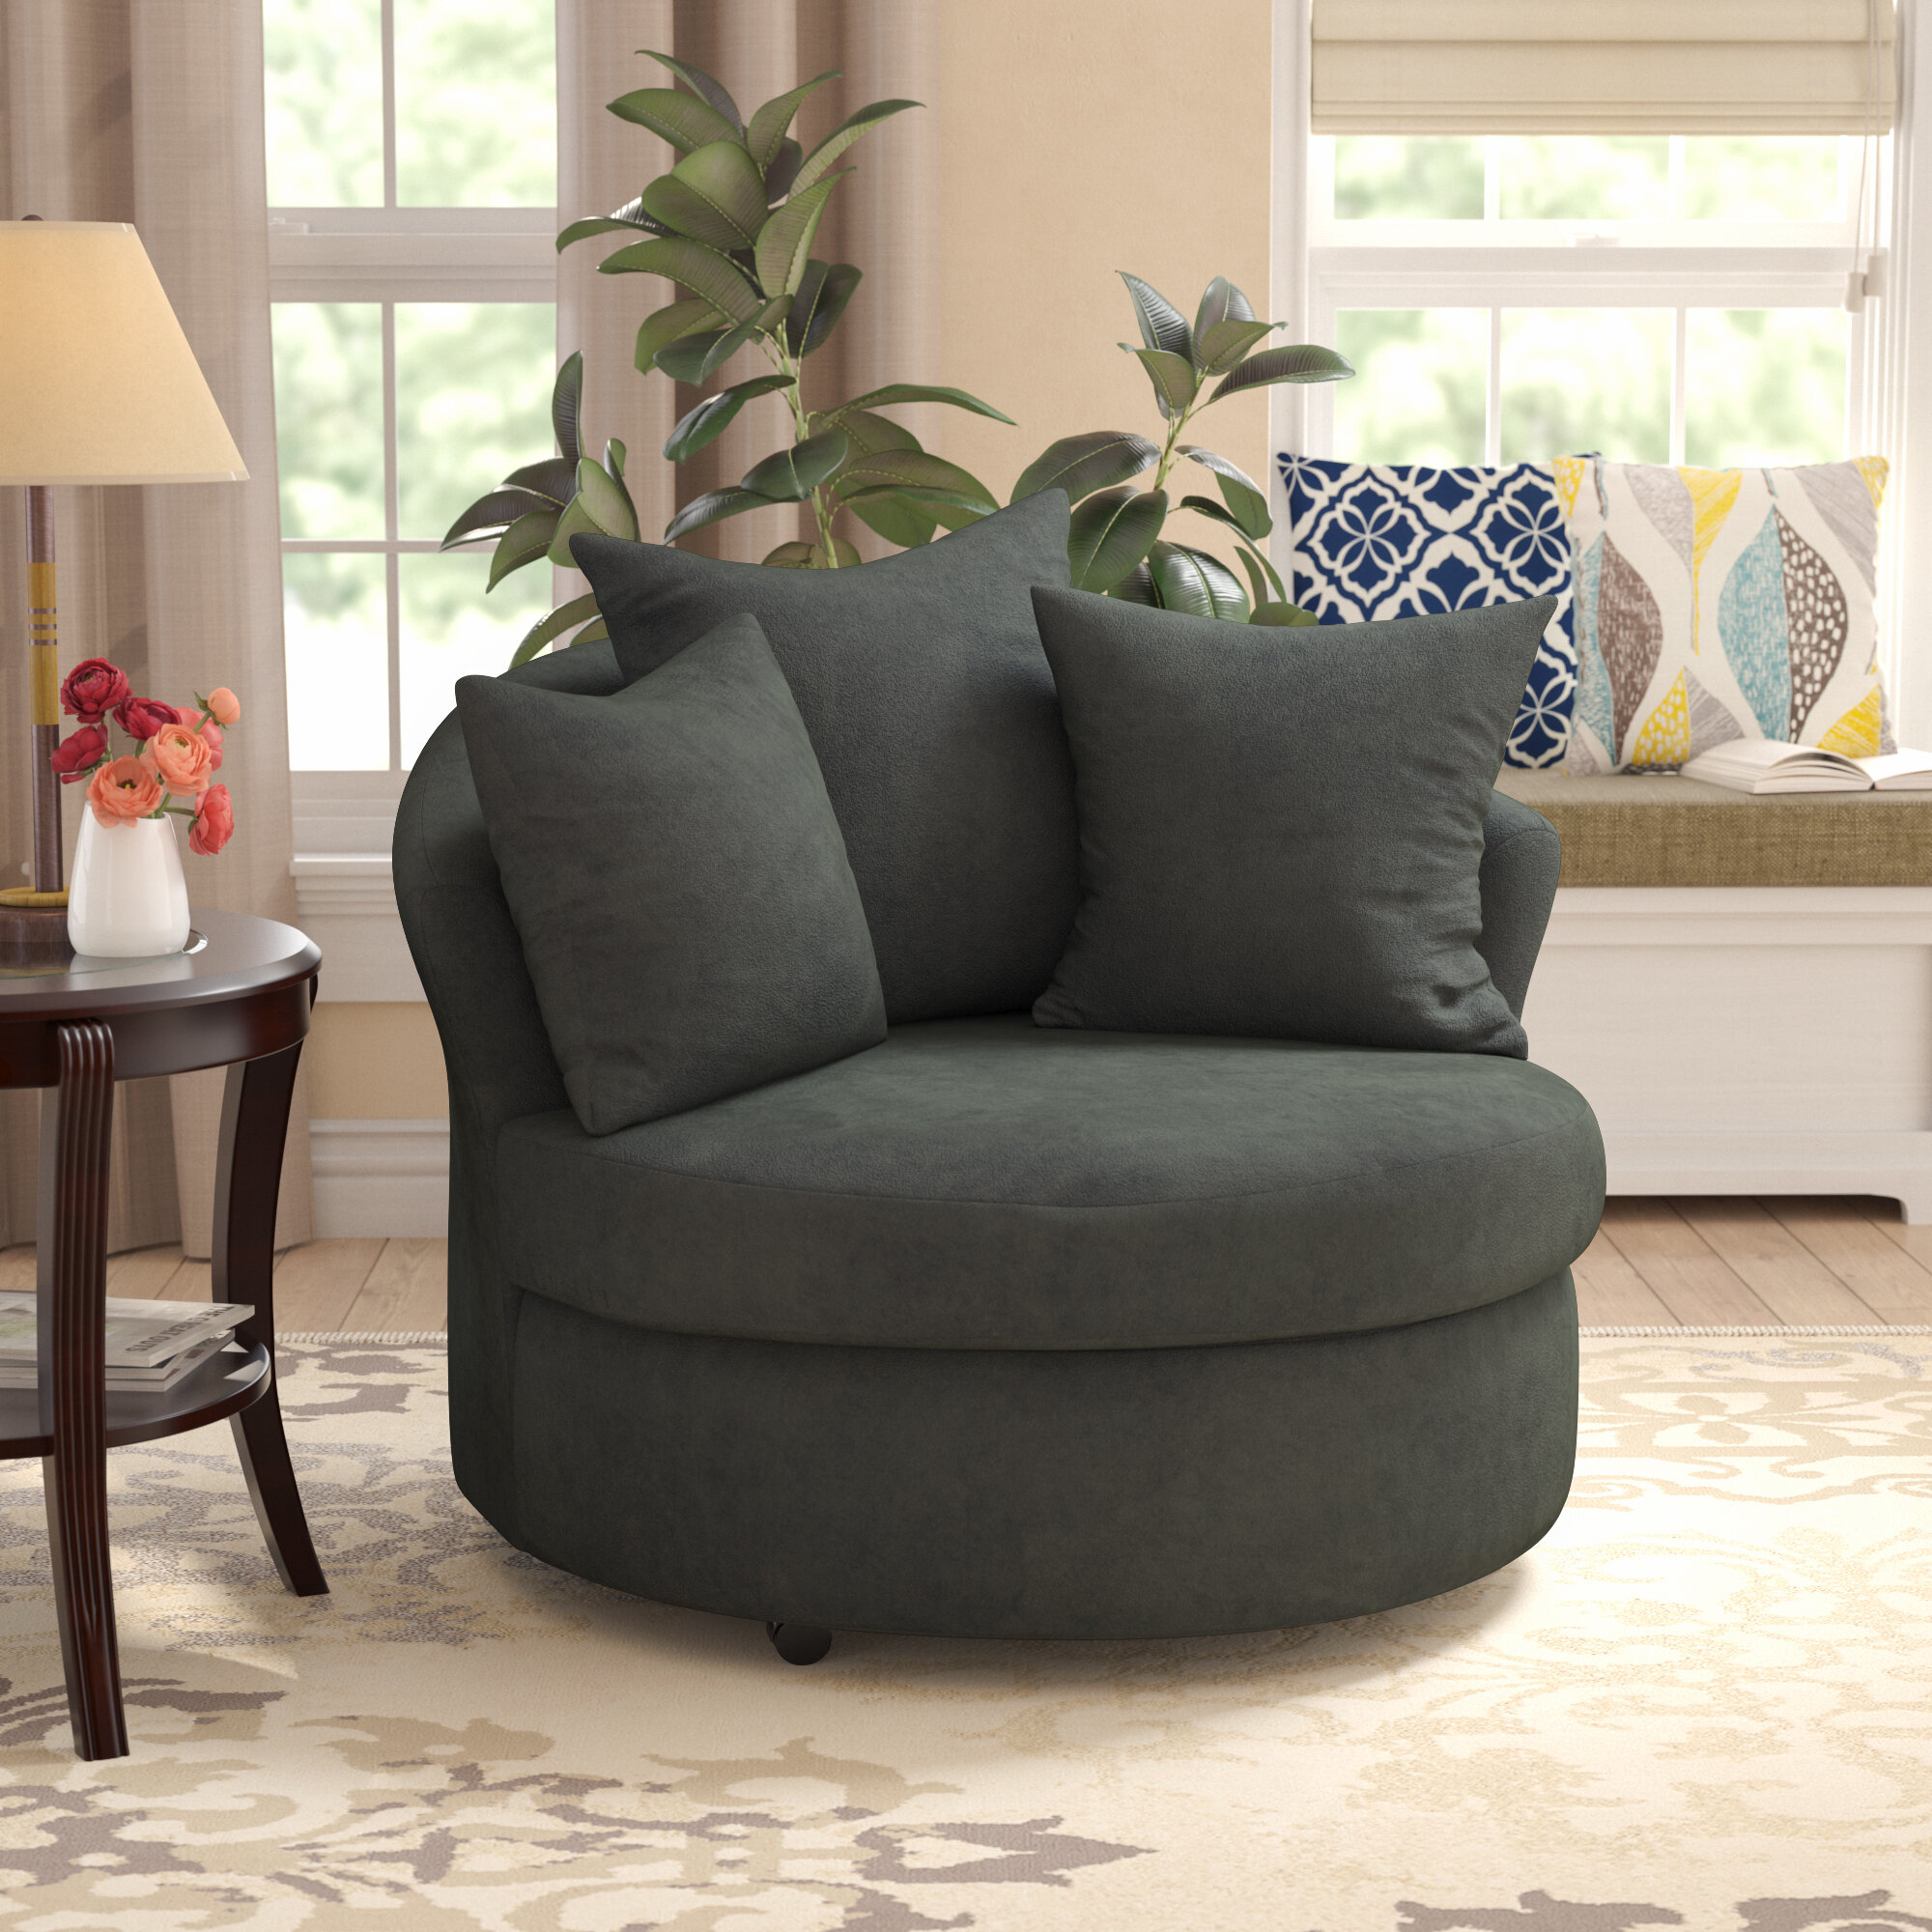 Varennes Barrel Chair With Regard To Molinari Swivel Barrel Chairs (View 9 of 15)